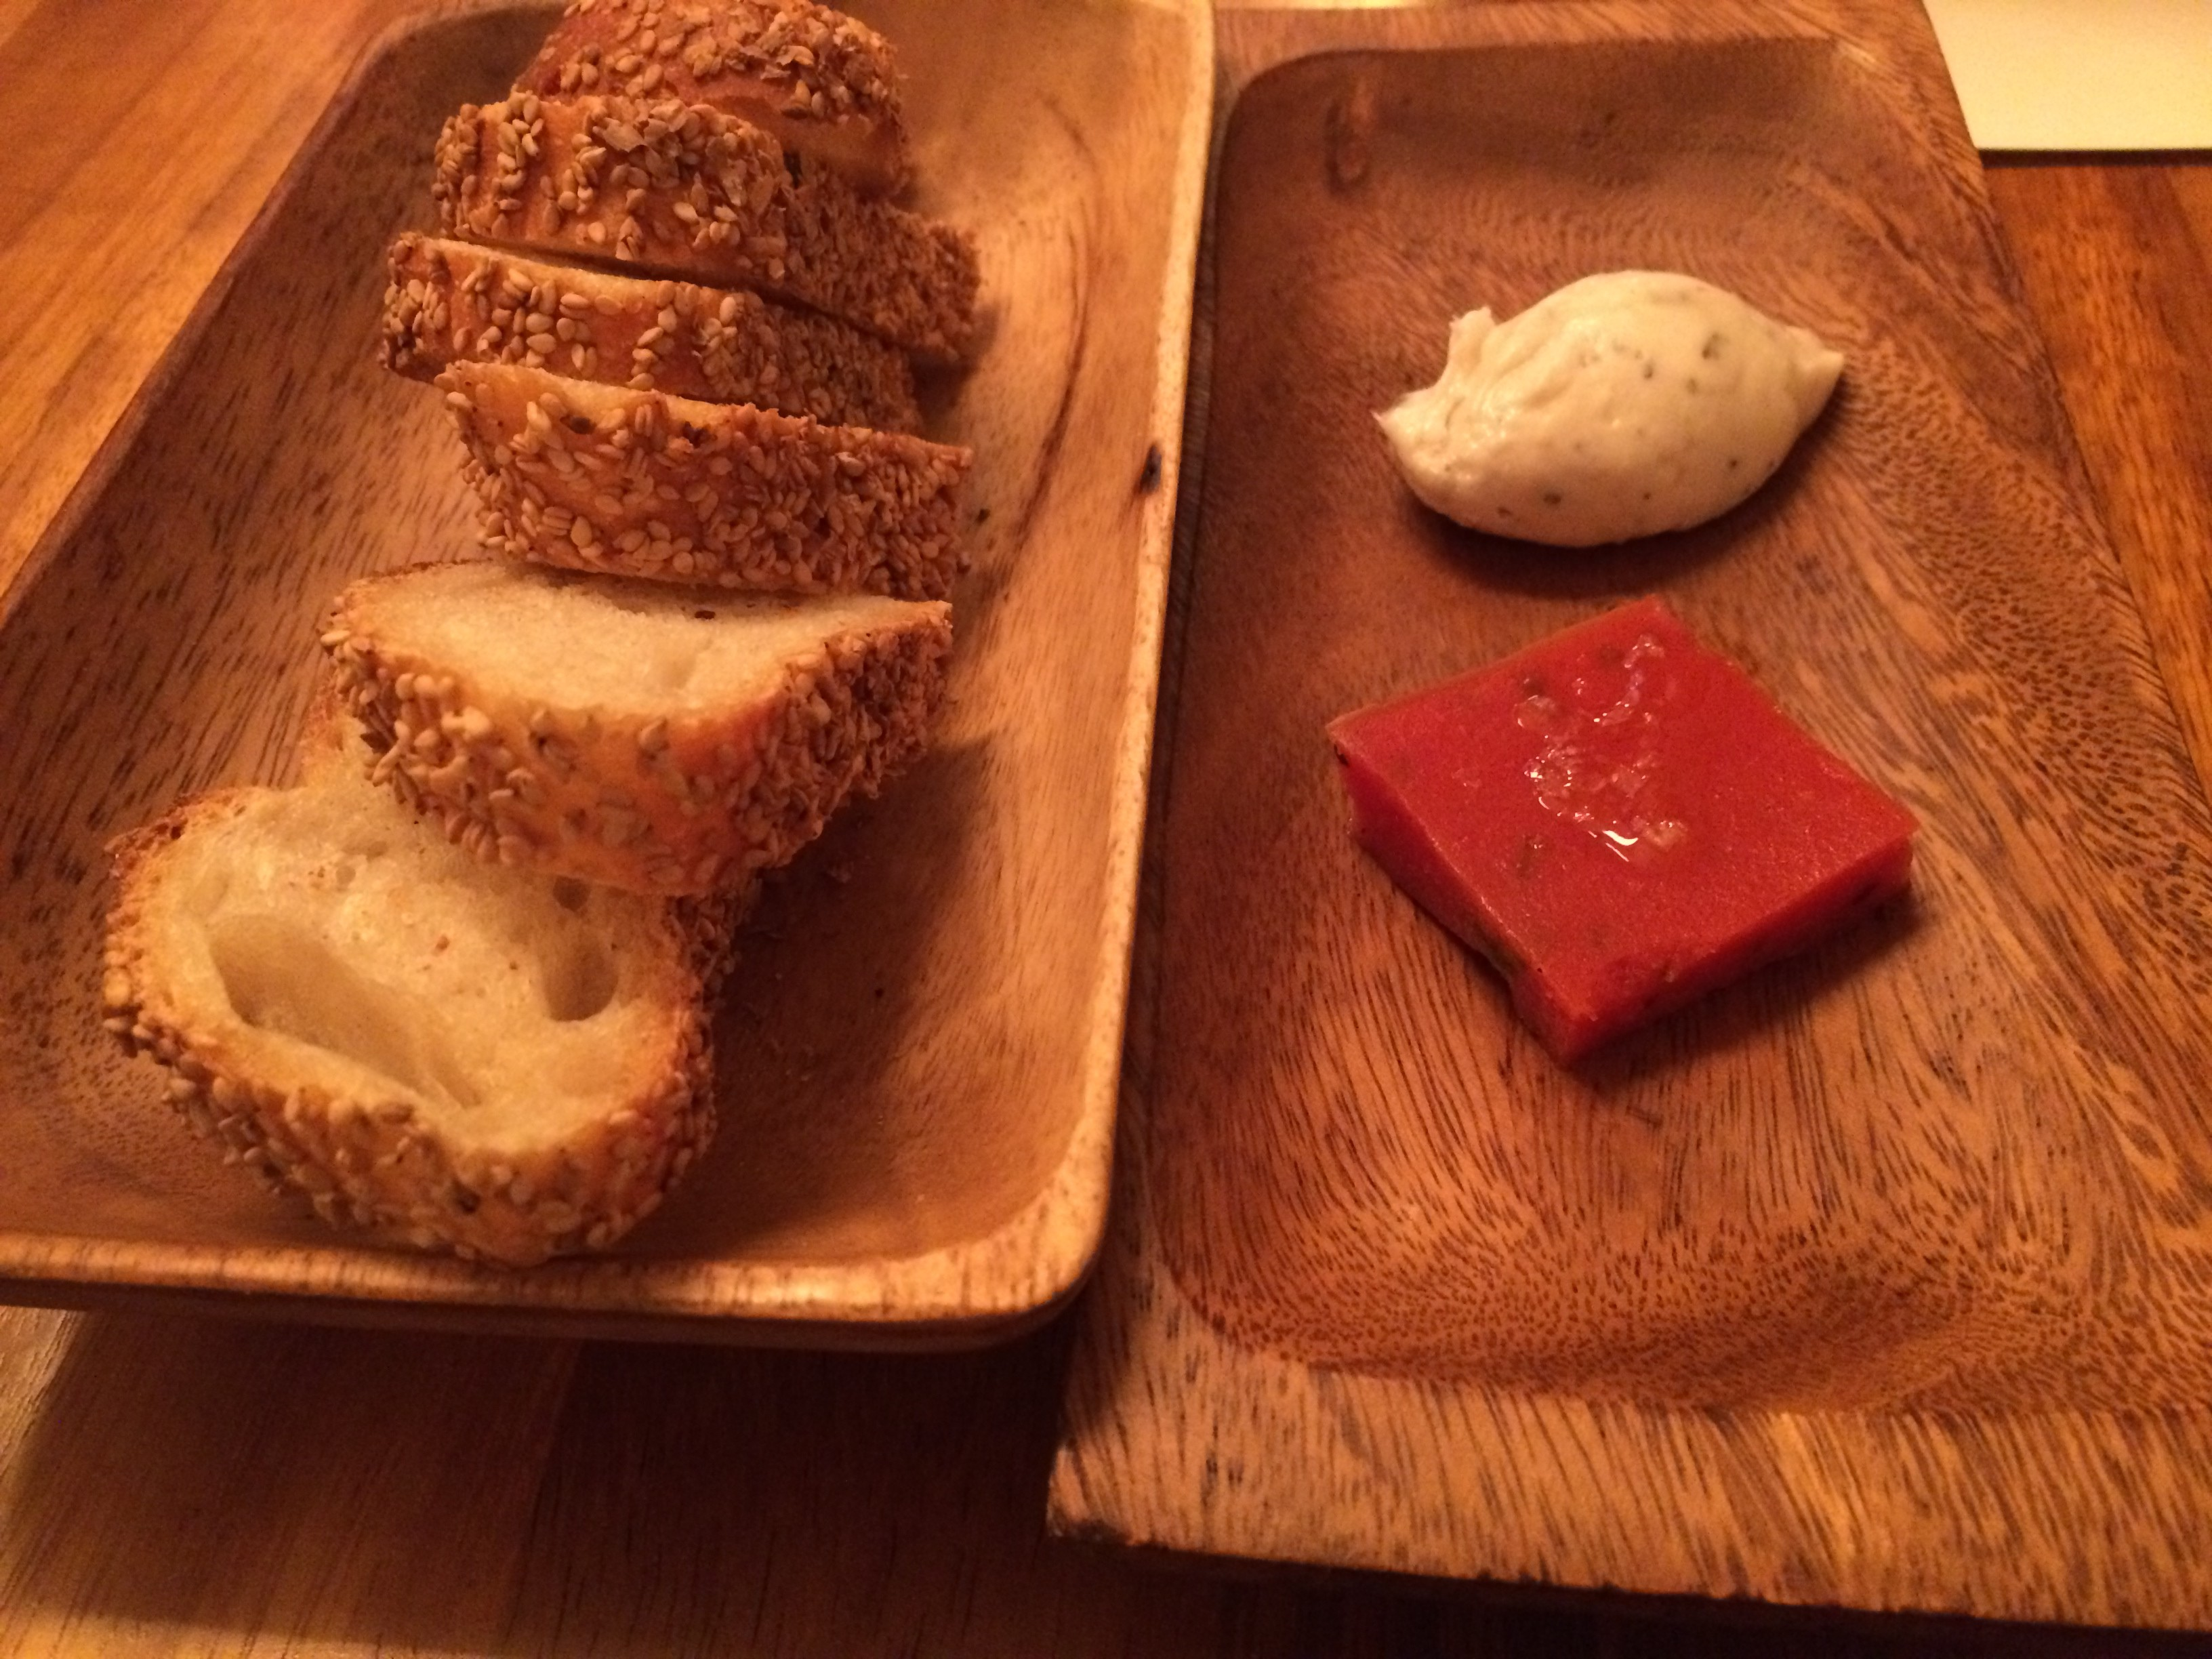 Seasame Bread With Lardo and Tomato Jam